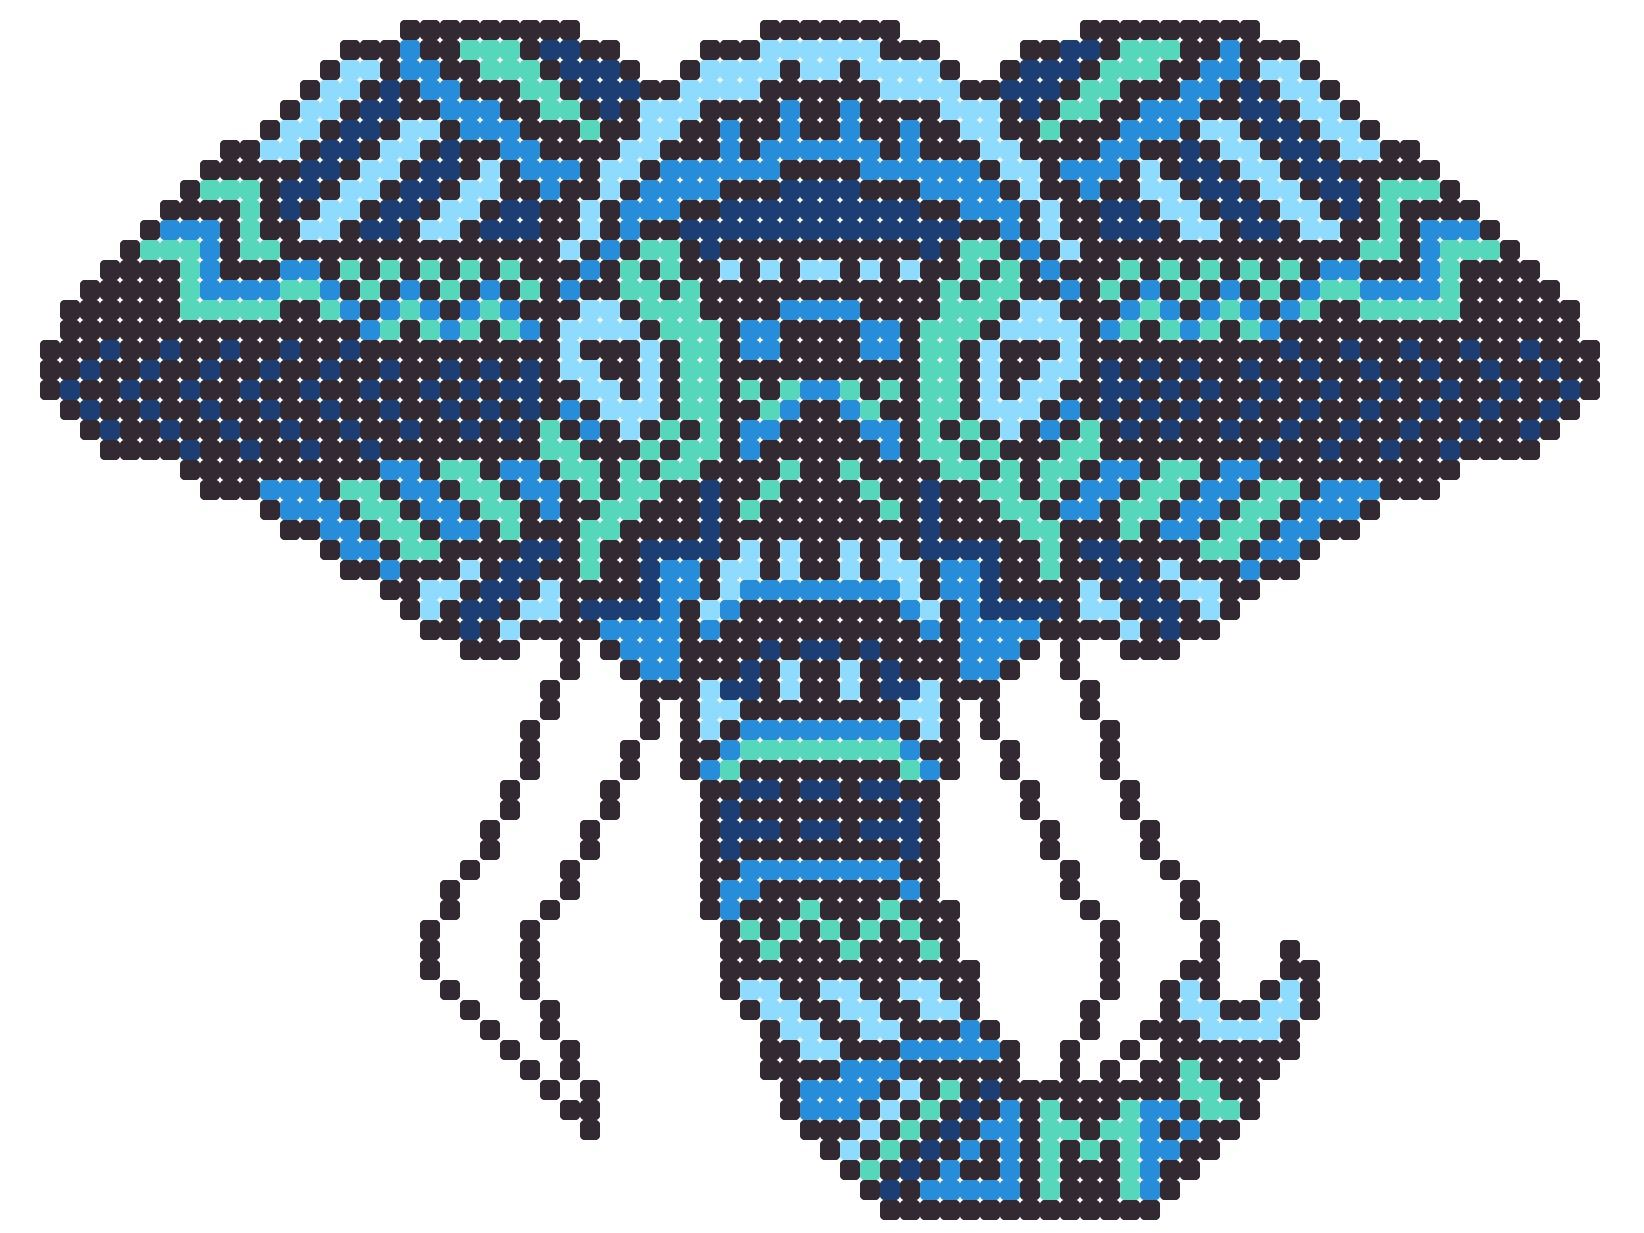 Tribal Elephant Pixel Art Can Be Used As A Template For